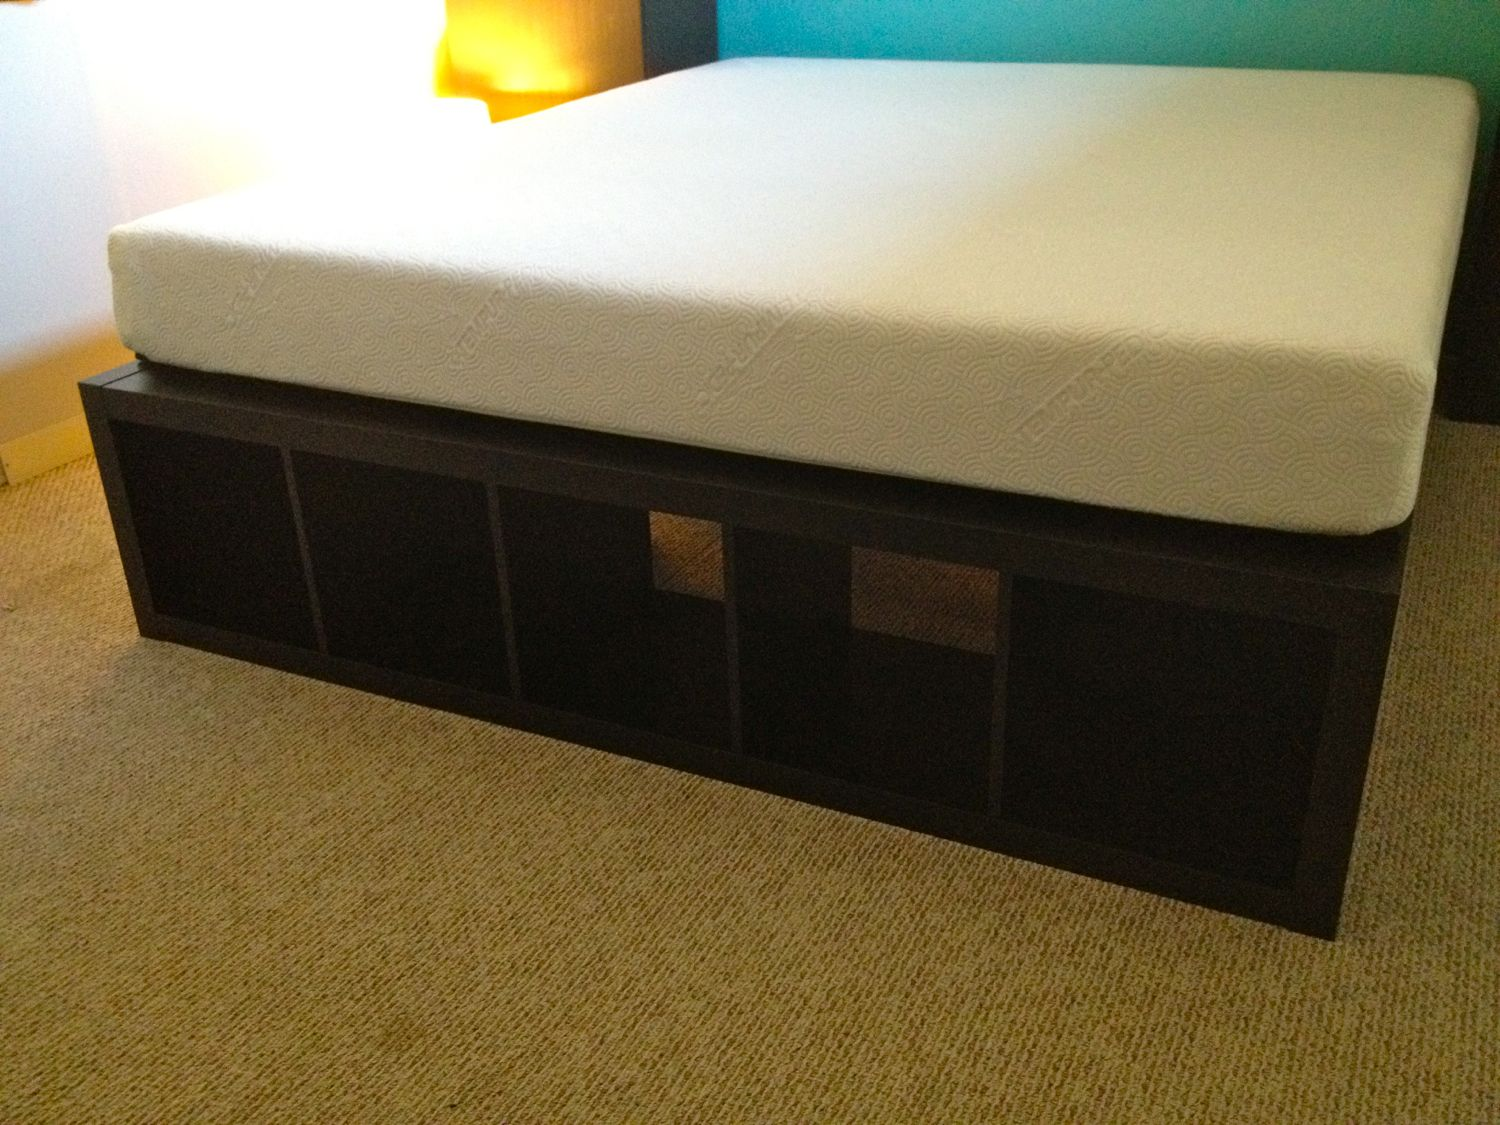 Finally A Cal King Bed Frame With Space For Dog Kennels